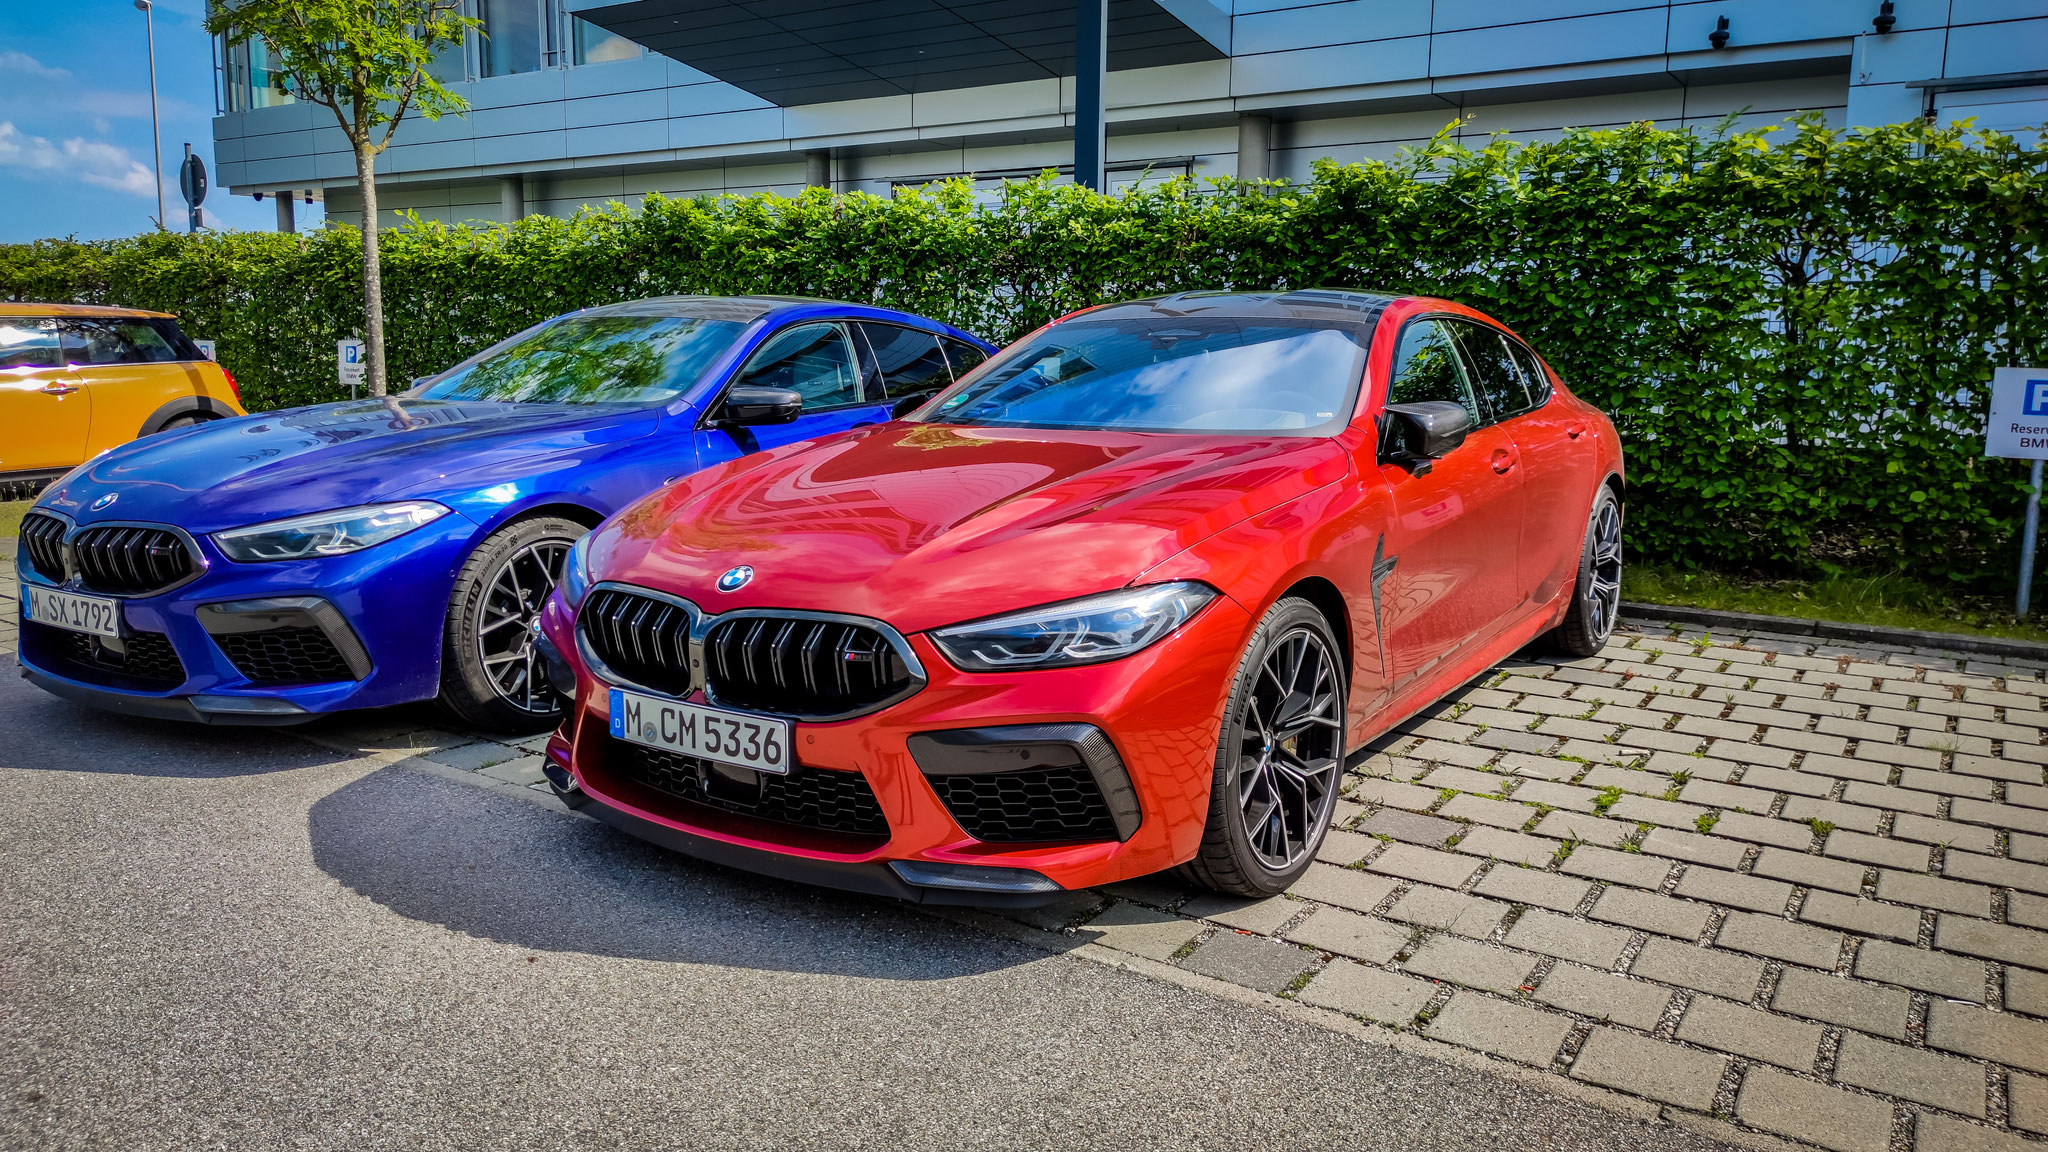 BMW M8 Competition Gran Coupé - M-CM-5336